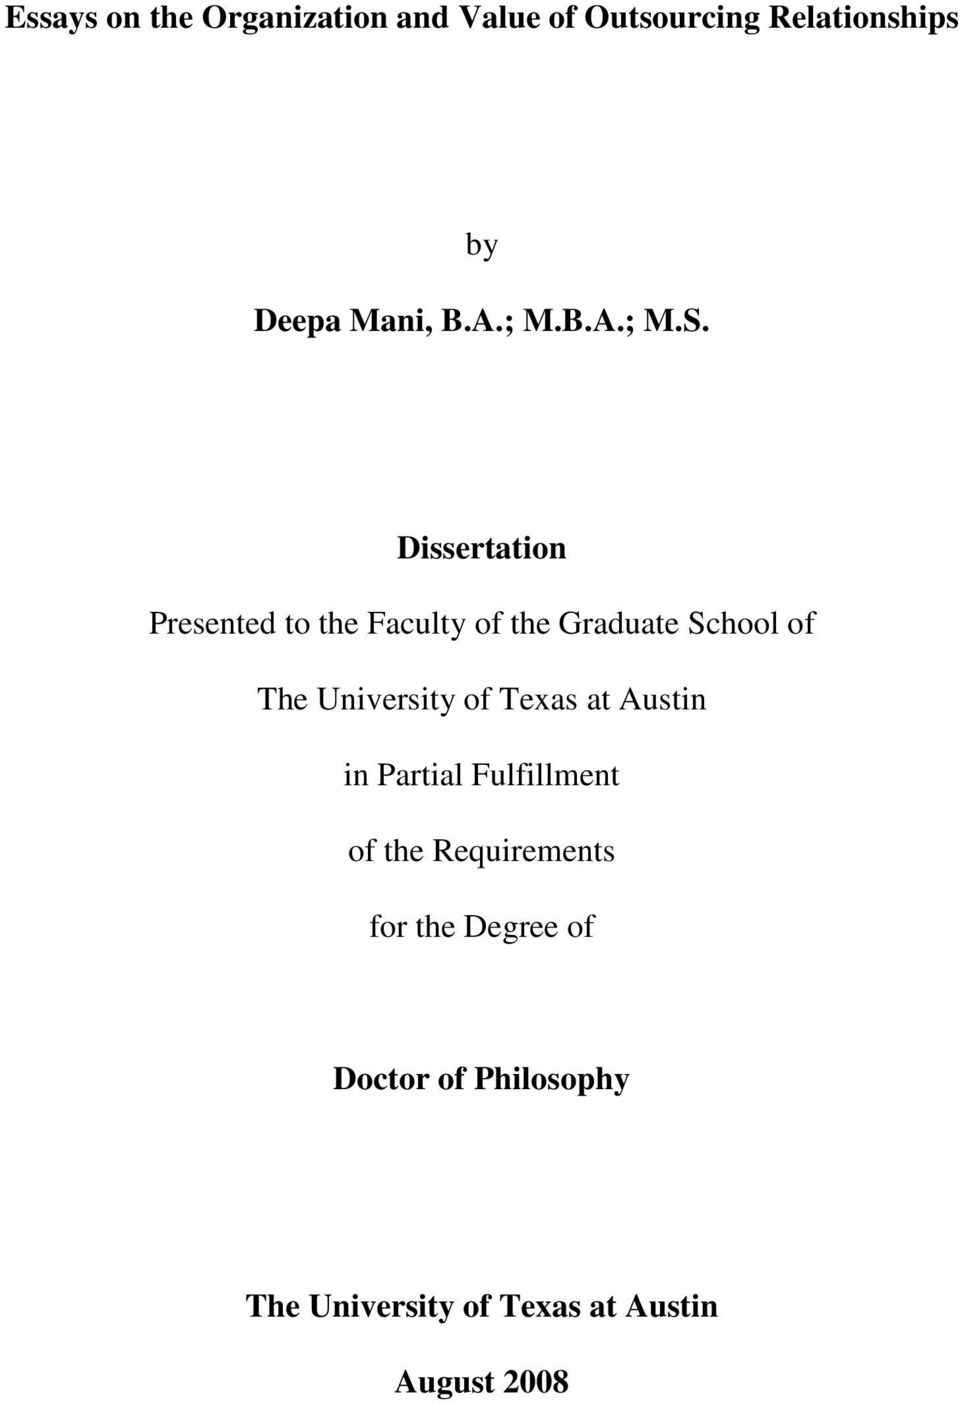 Dissertation Presented to the Faculty of the Graduate School of The University of